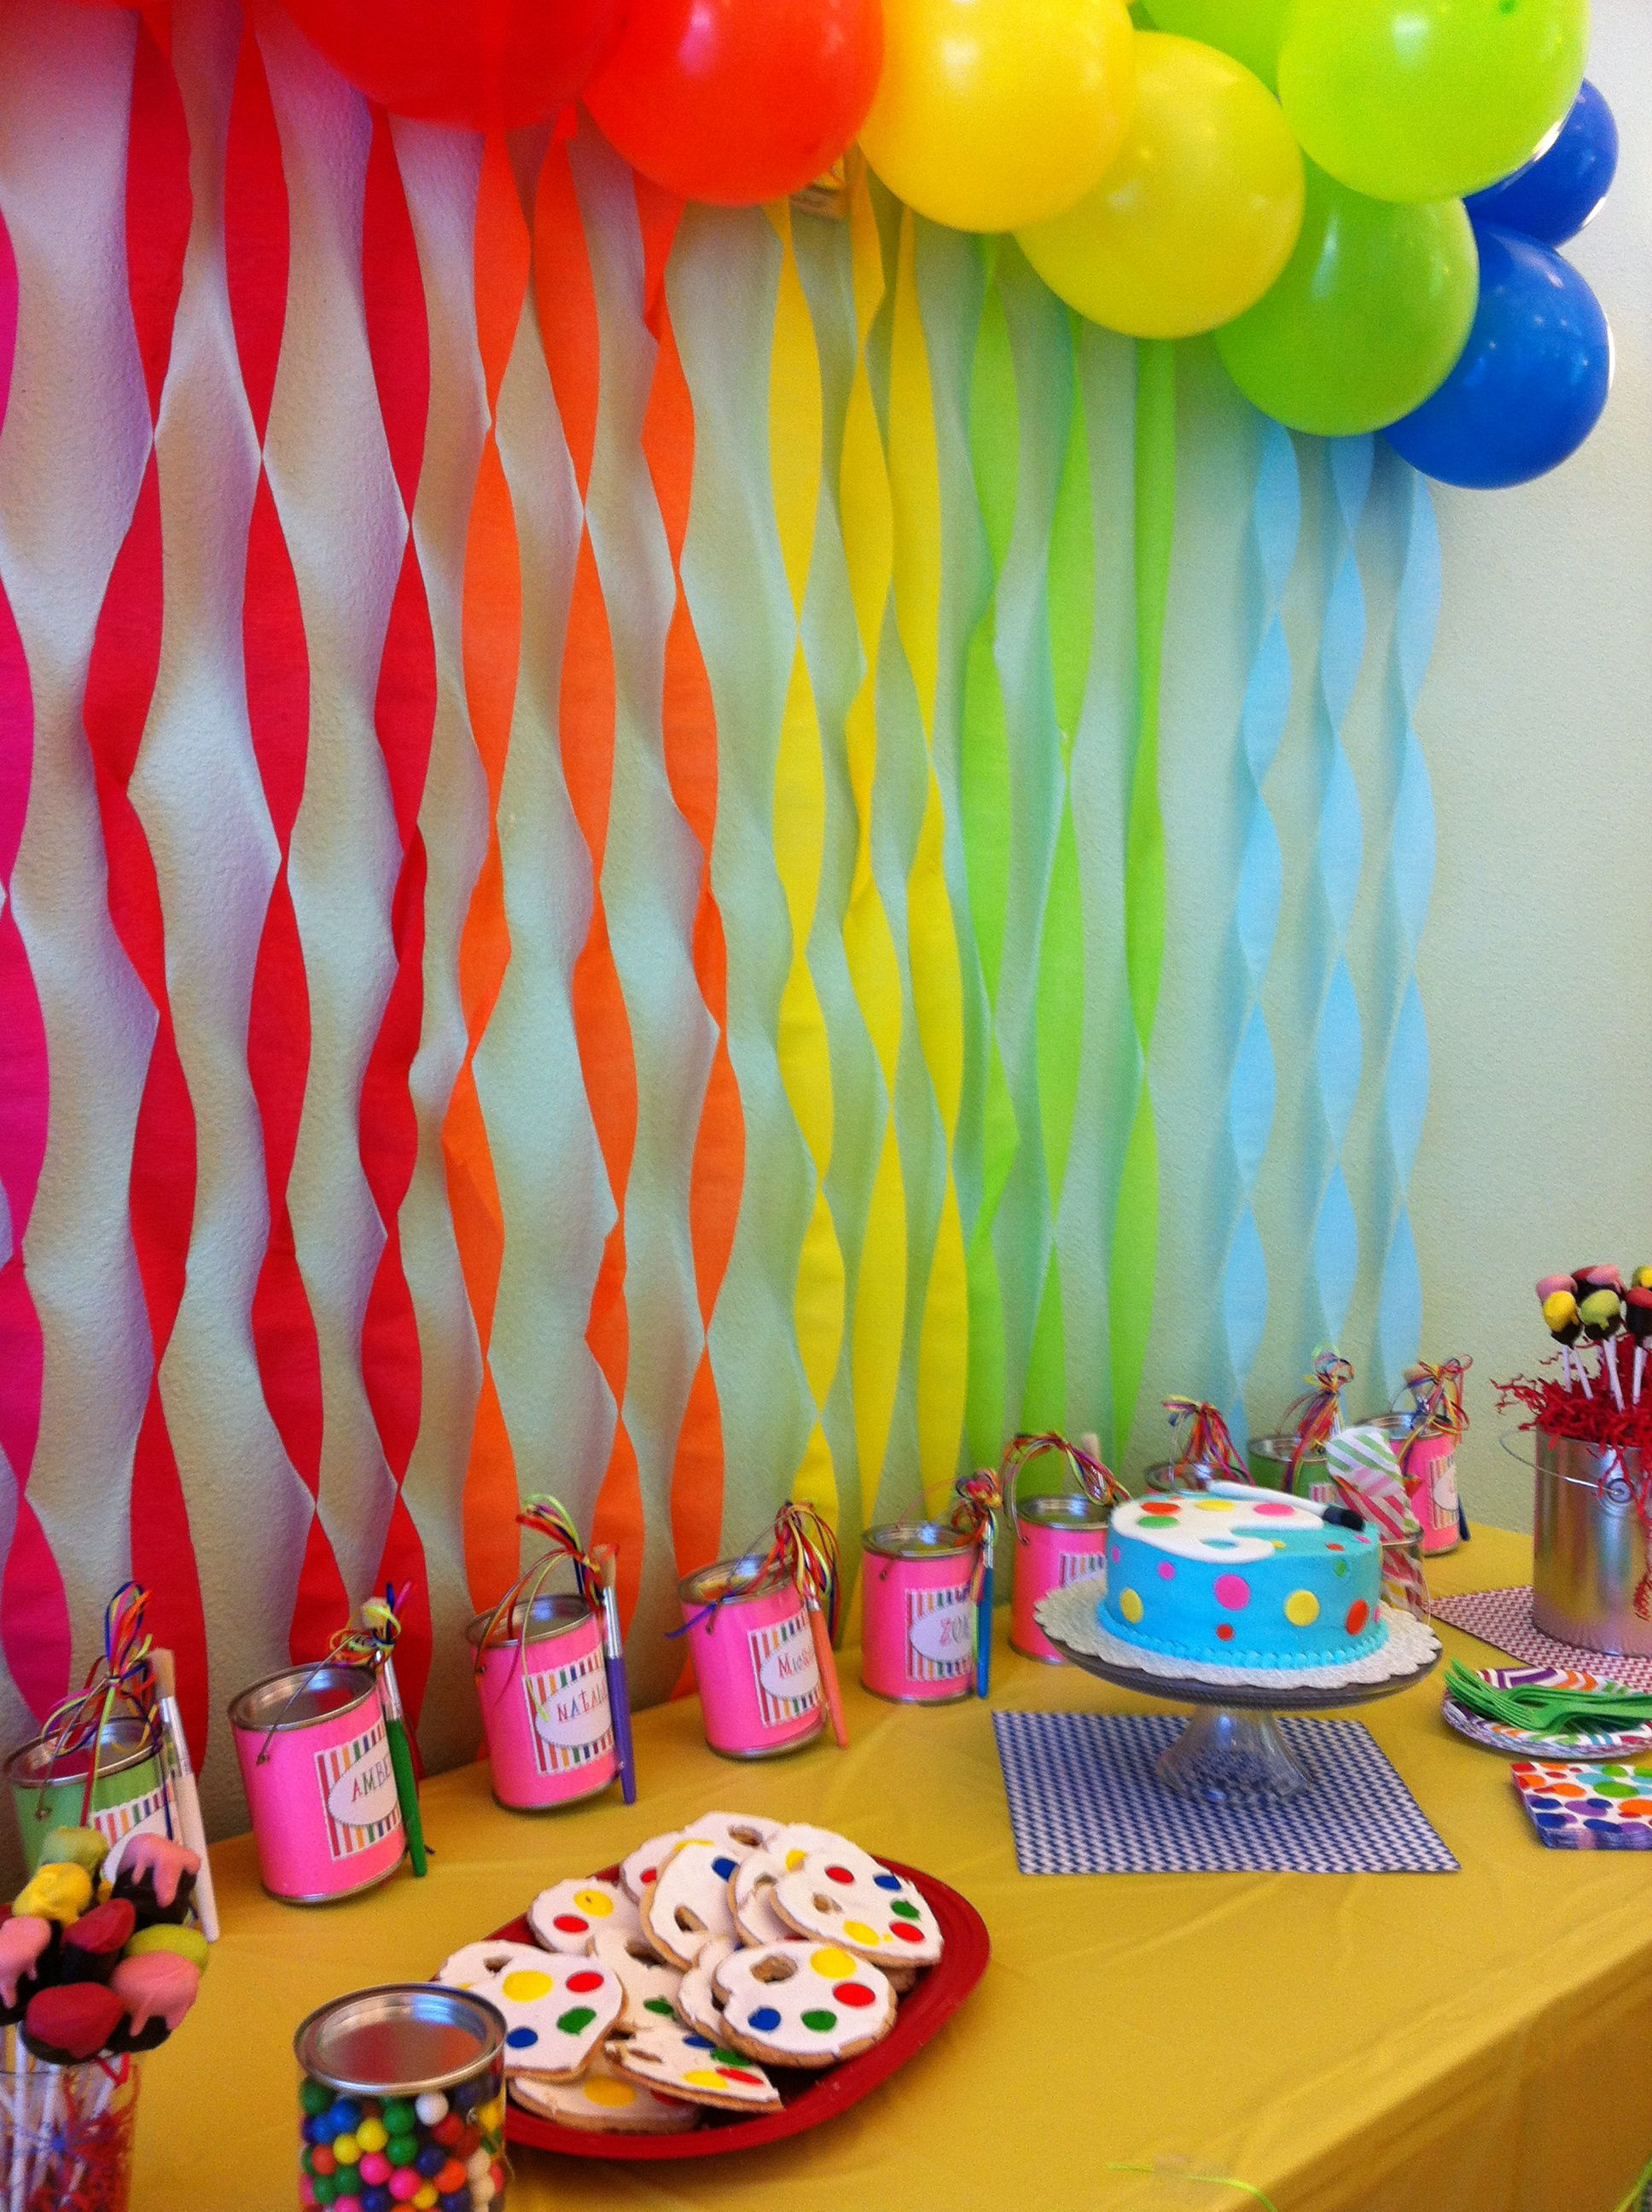 8 Year Old Girl Birthday Art Party